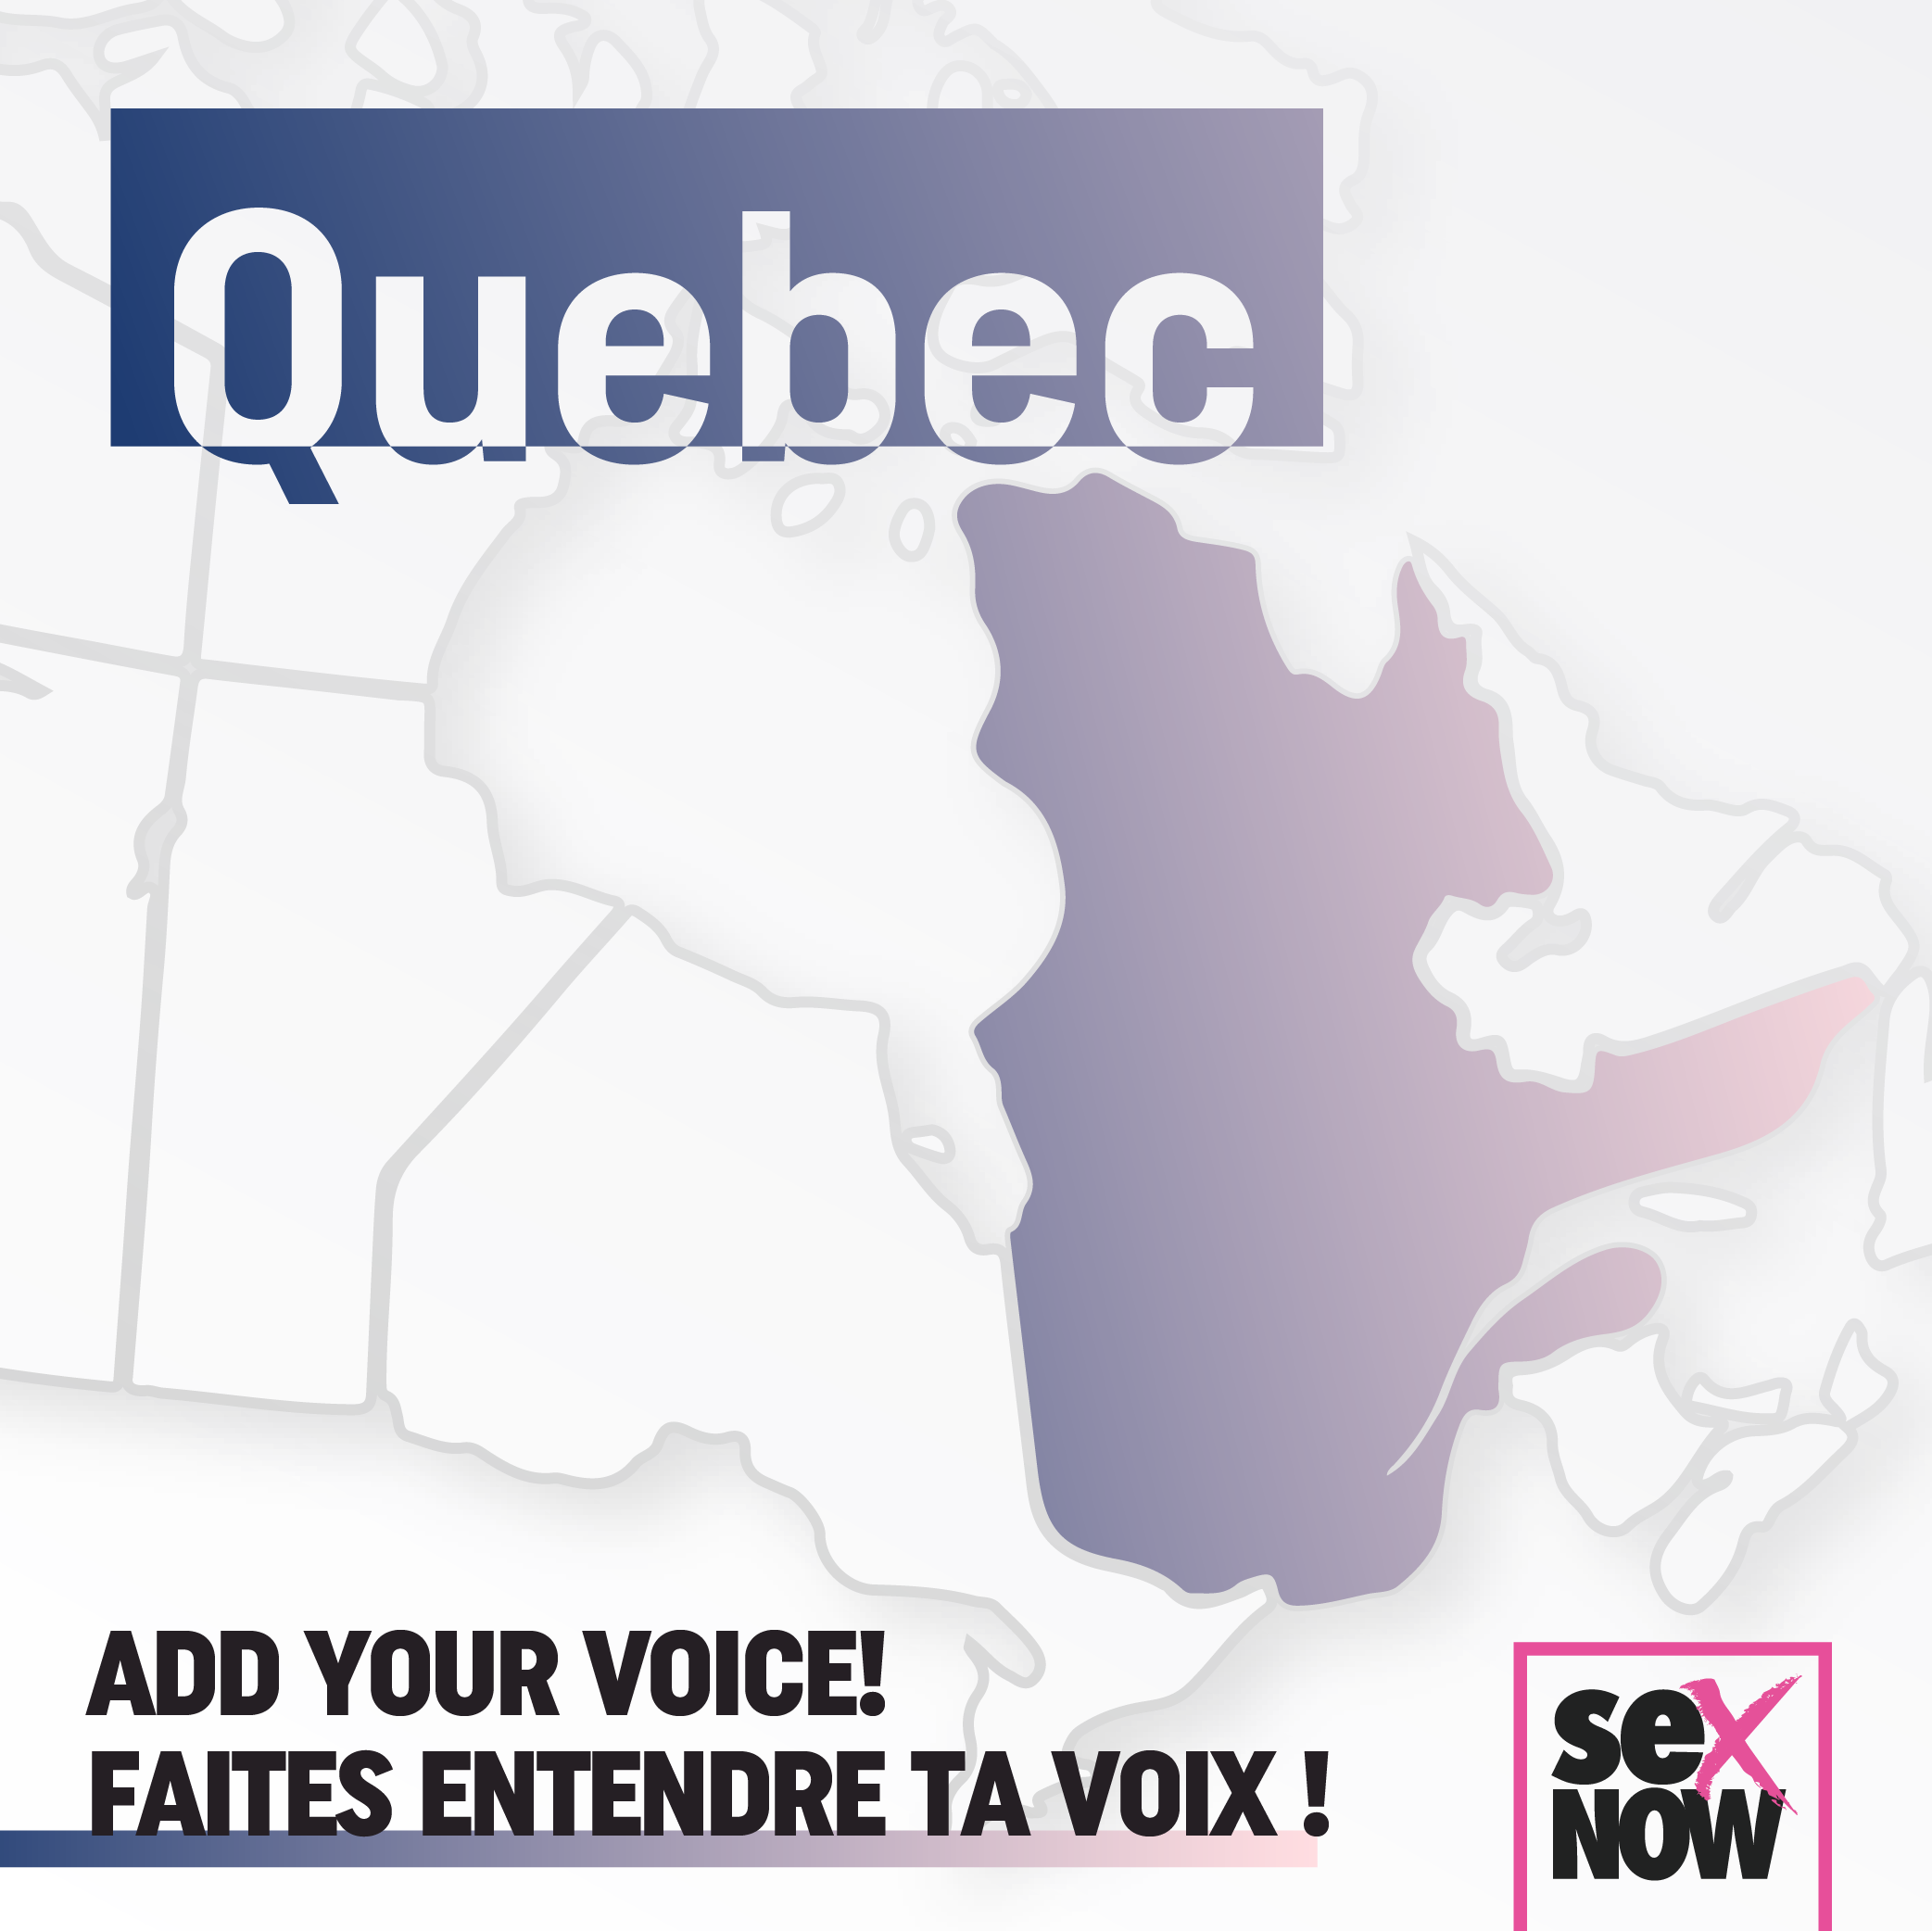 Central_Quebec.png